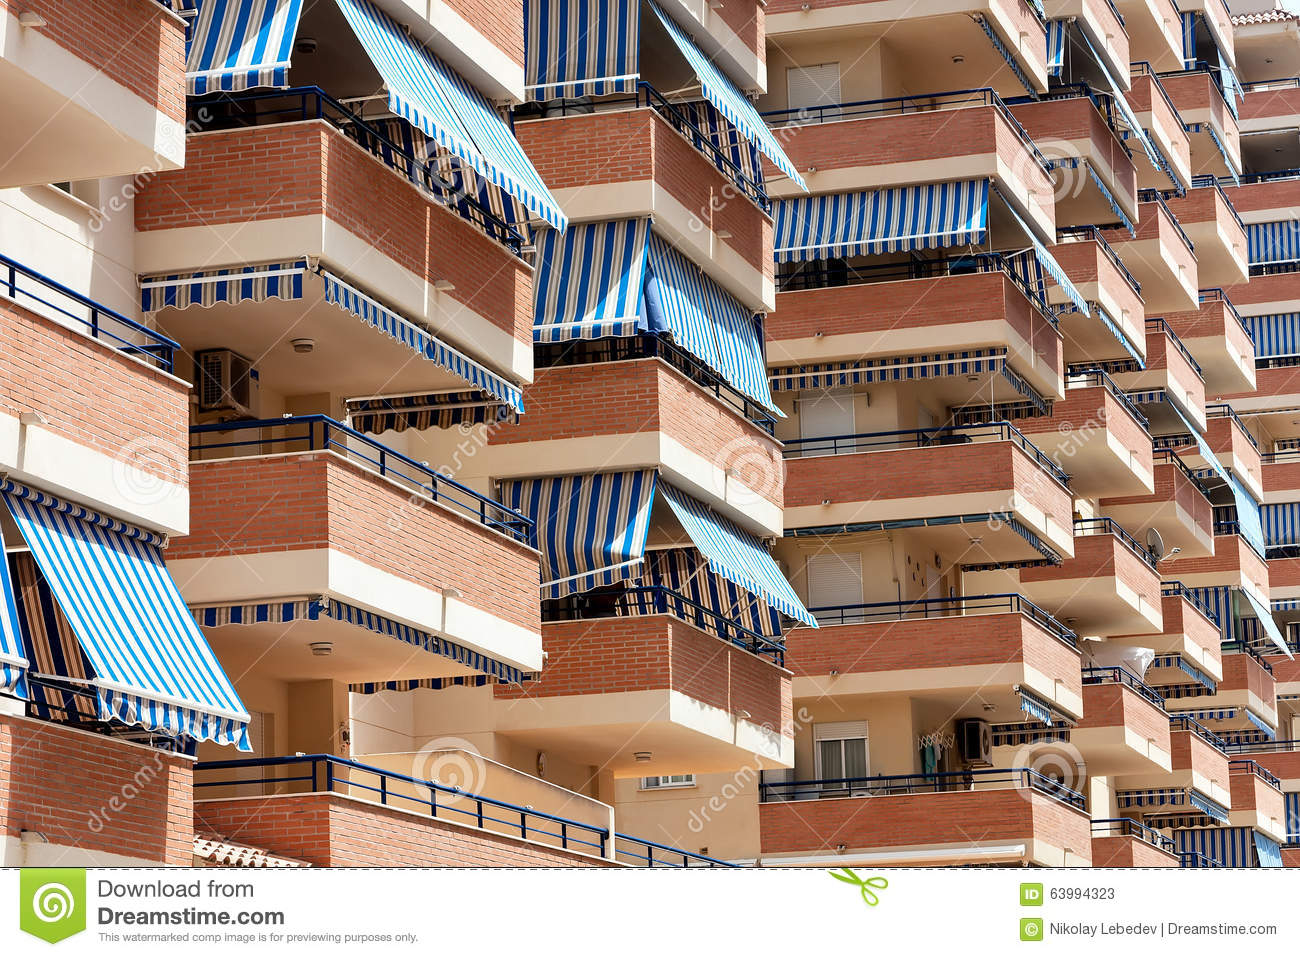 Facade Of Apartment Building With Balconies And Awnings From The